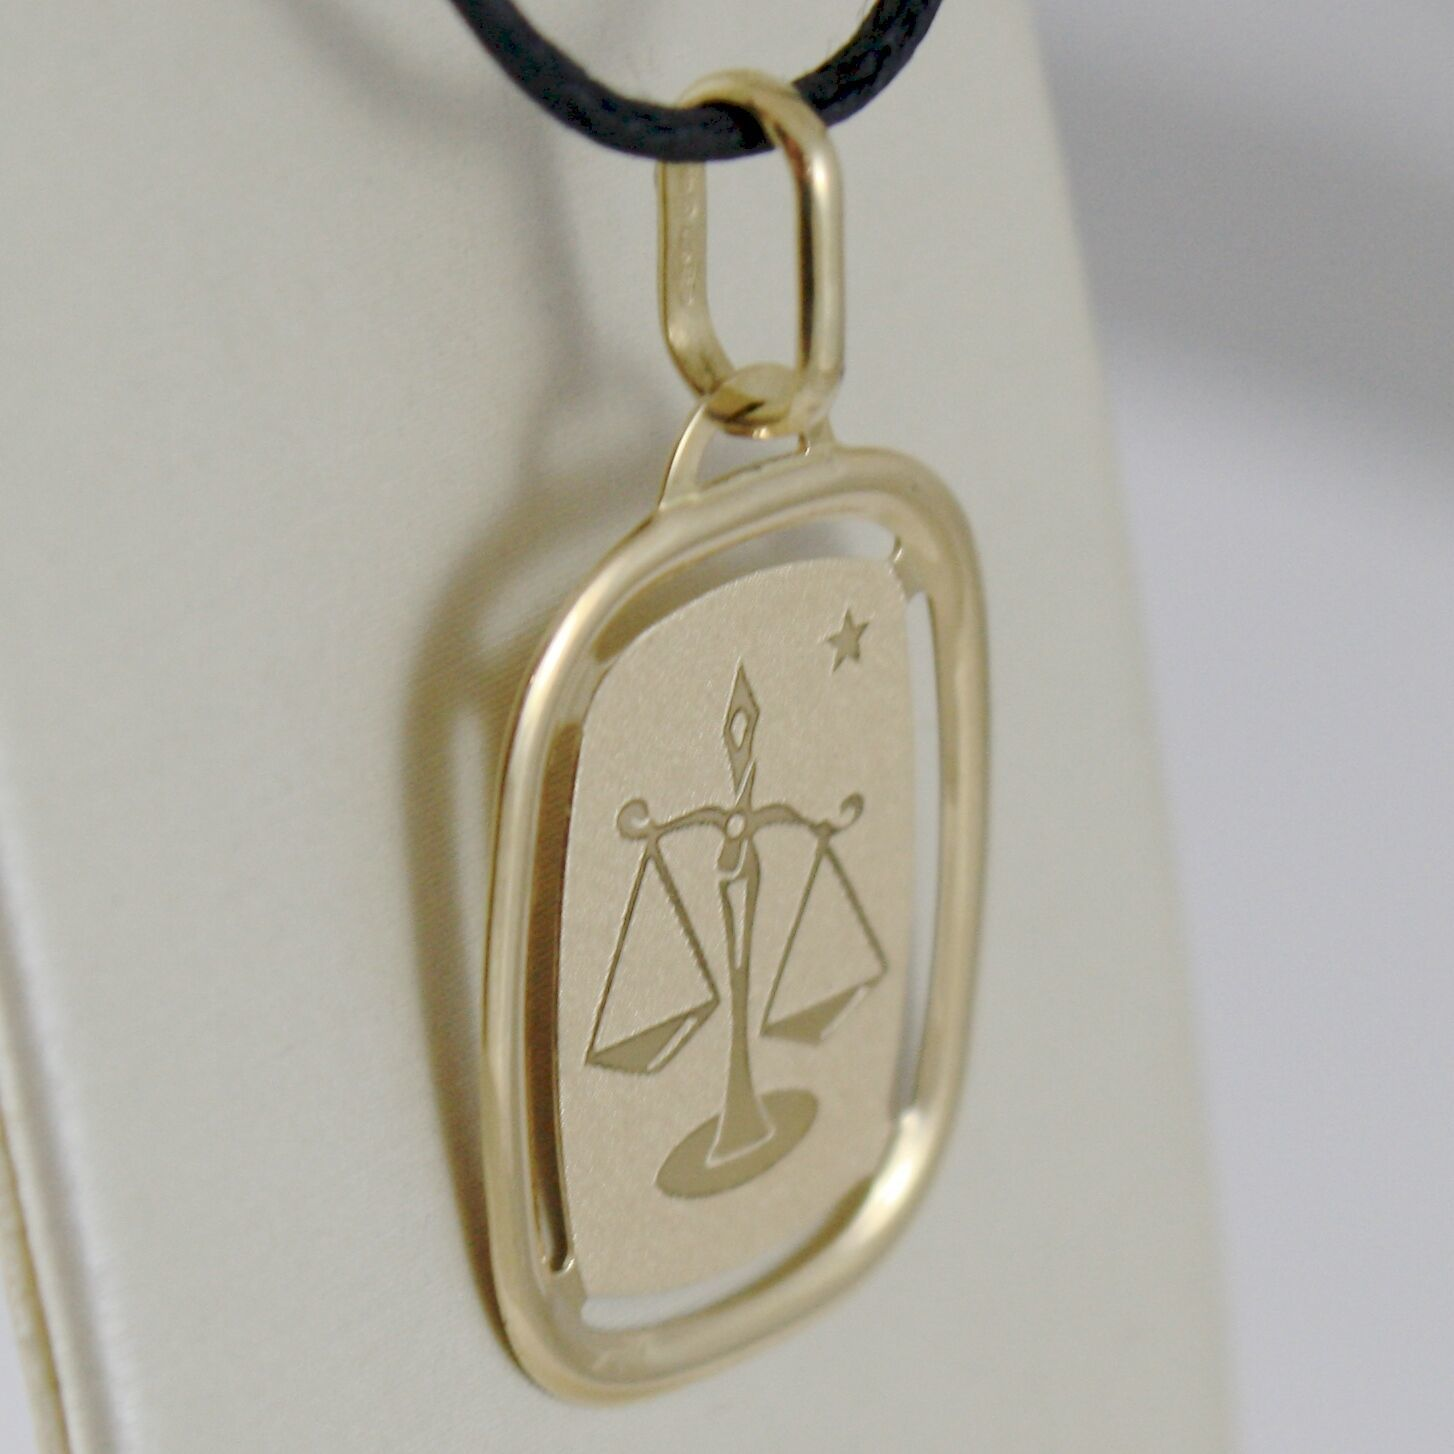 SOLID 18K YELLOW GOLD LIBRA ZODIAC SIGN MEDAL PENDANT, ZODIACAL, MADE IN ITALY